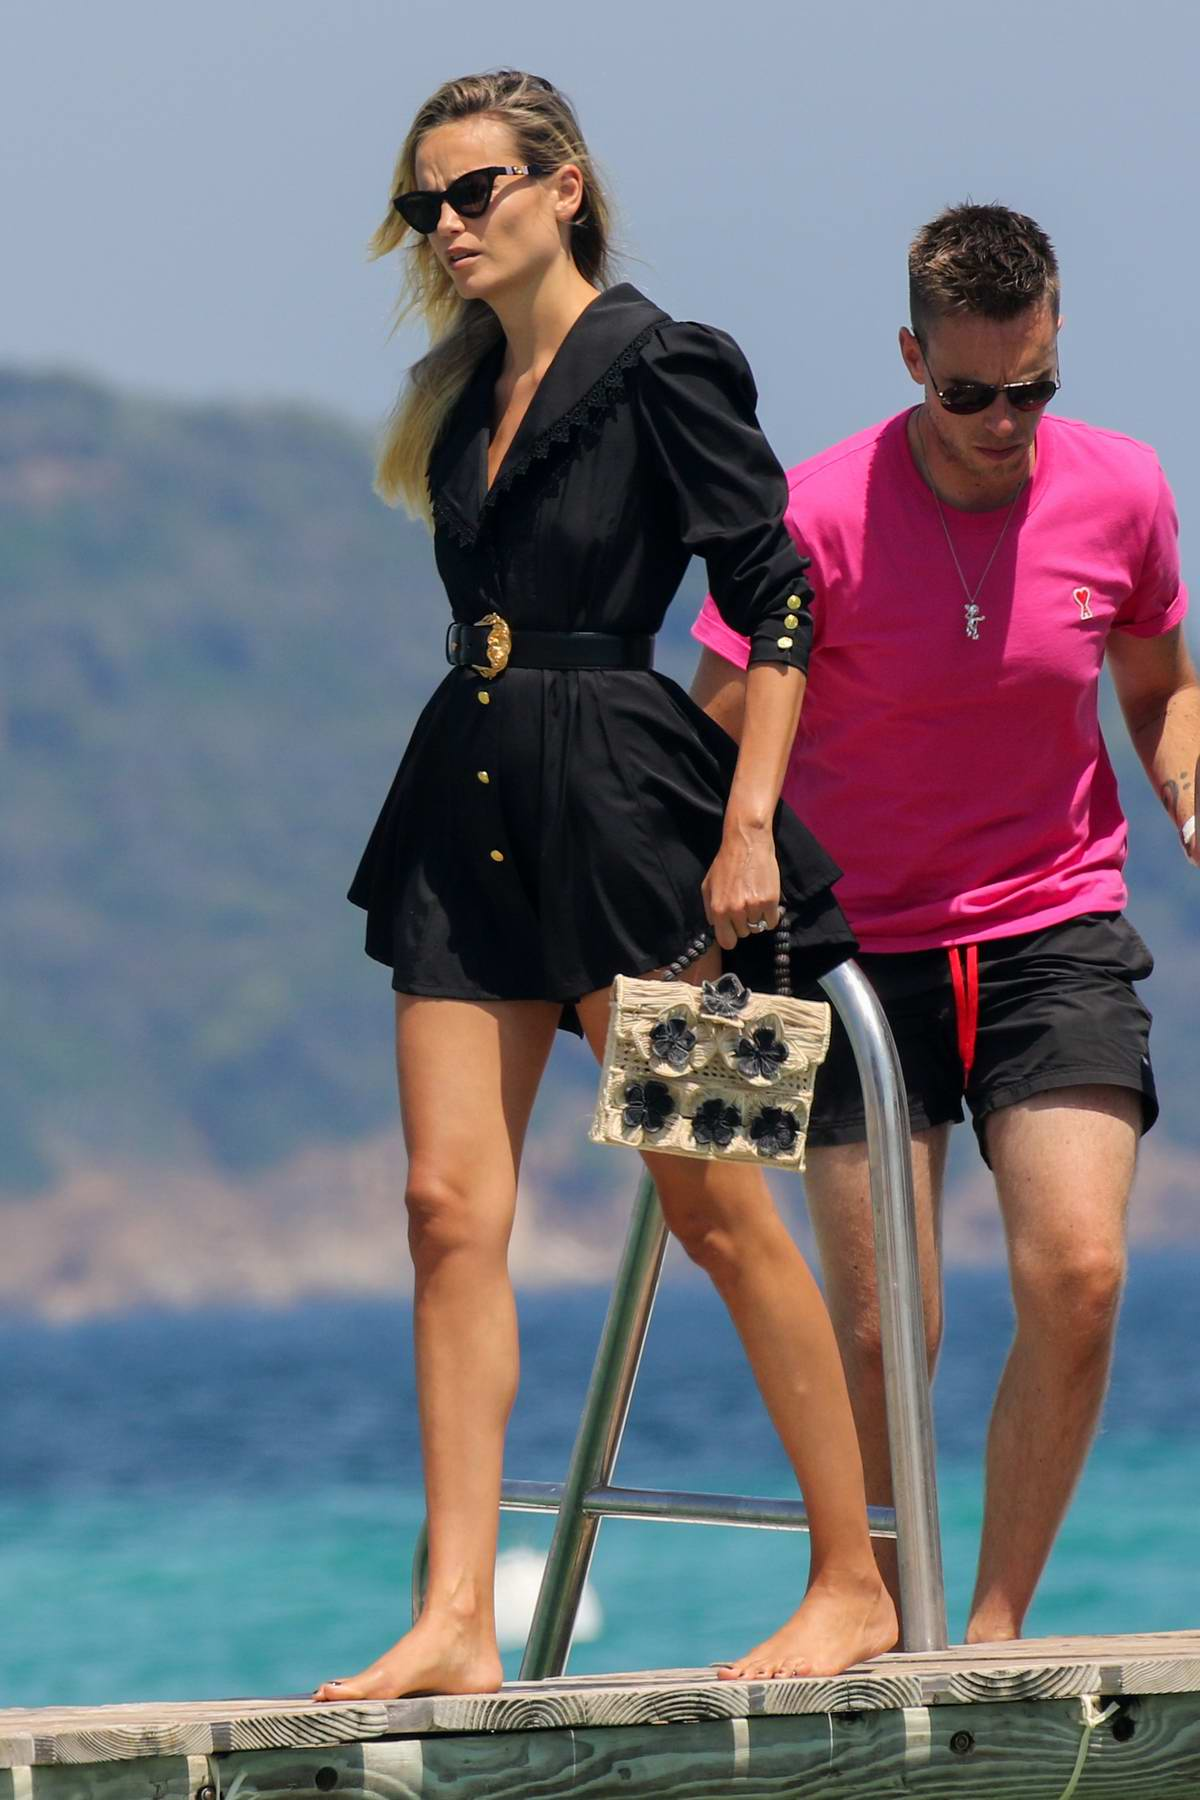 Natasha Poly looks stylish in a black mini dress as she arrives at the Club 55 Beach in Saint-Tropez, France